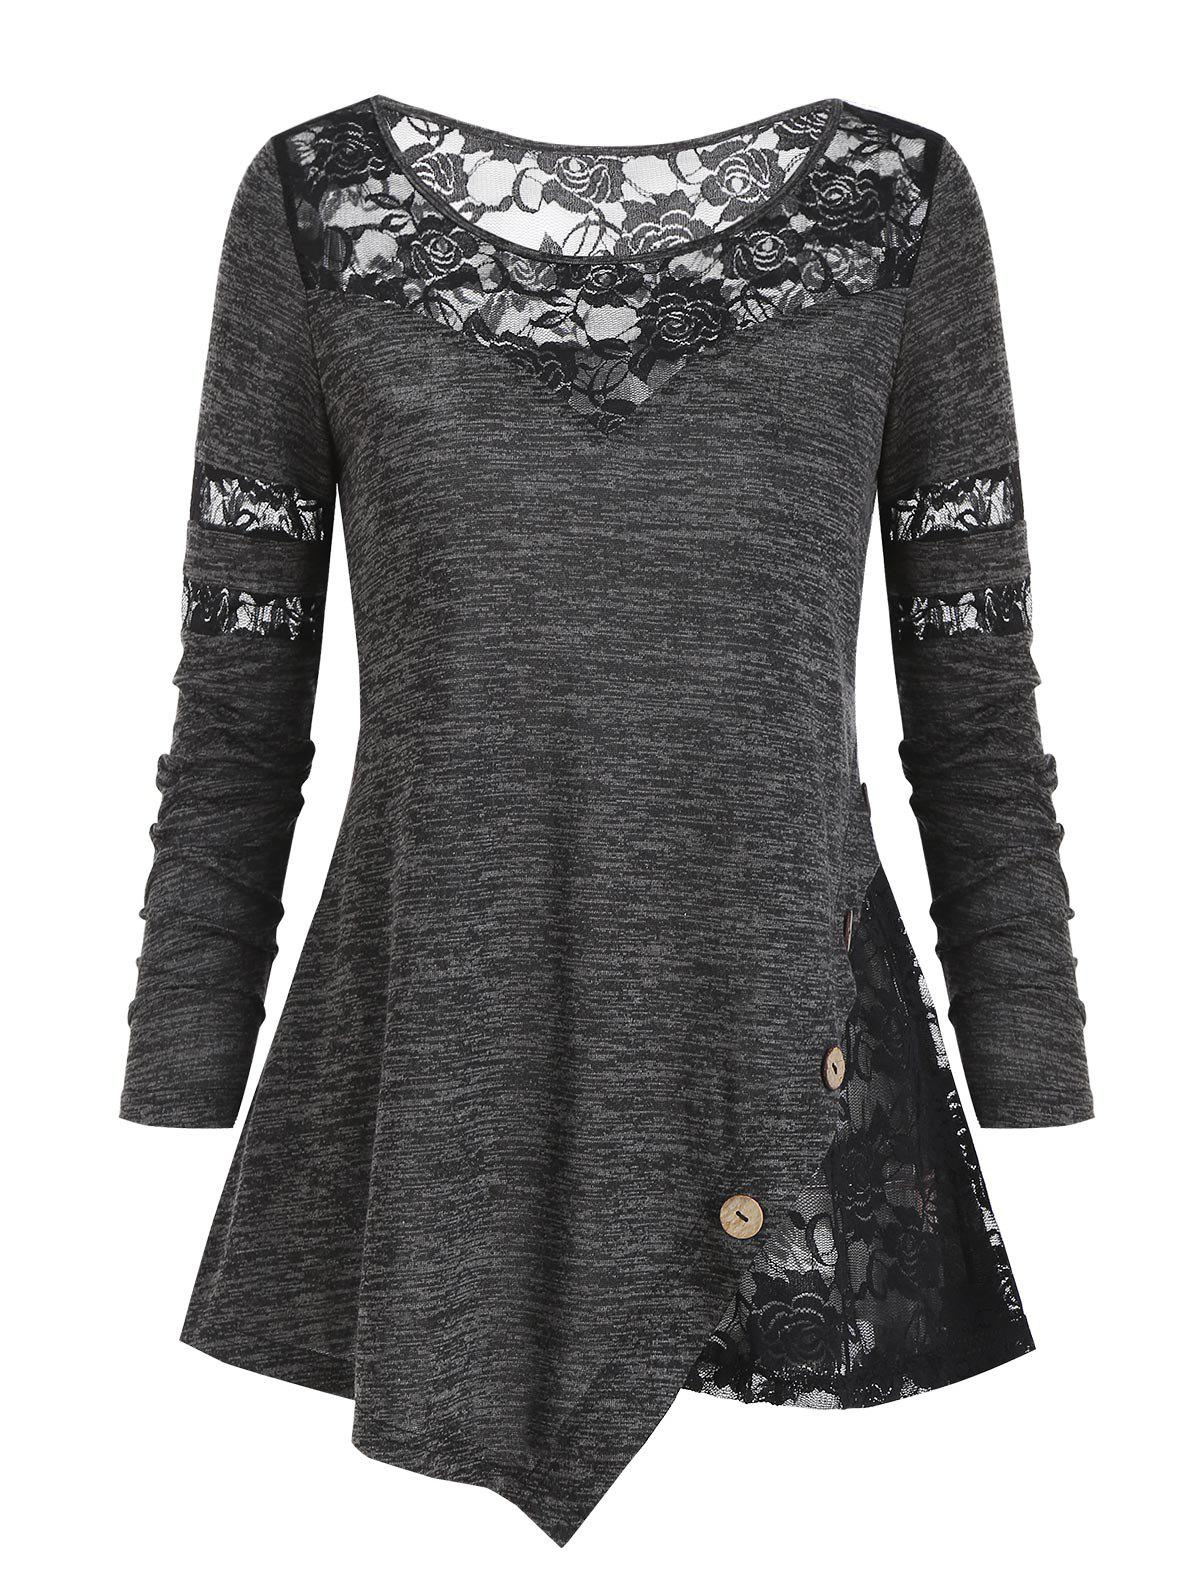 Floral Lace Panel Space Dye Button T Shirt - CARBON GRAY XL